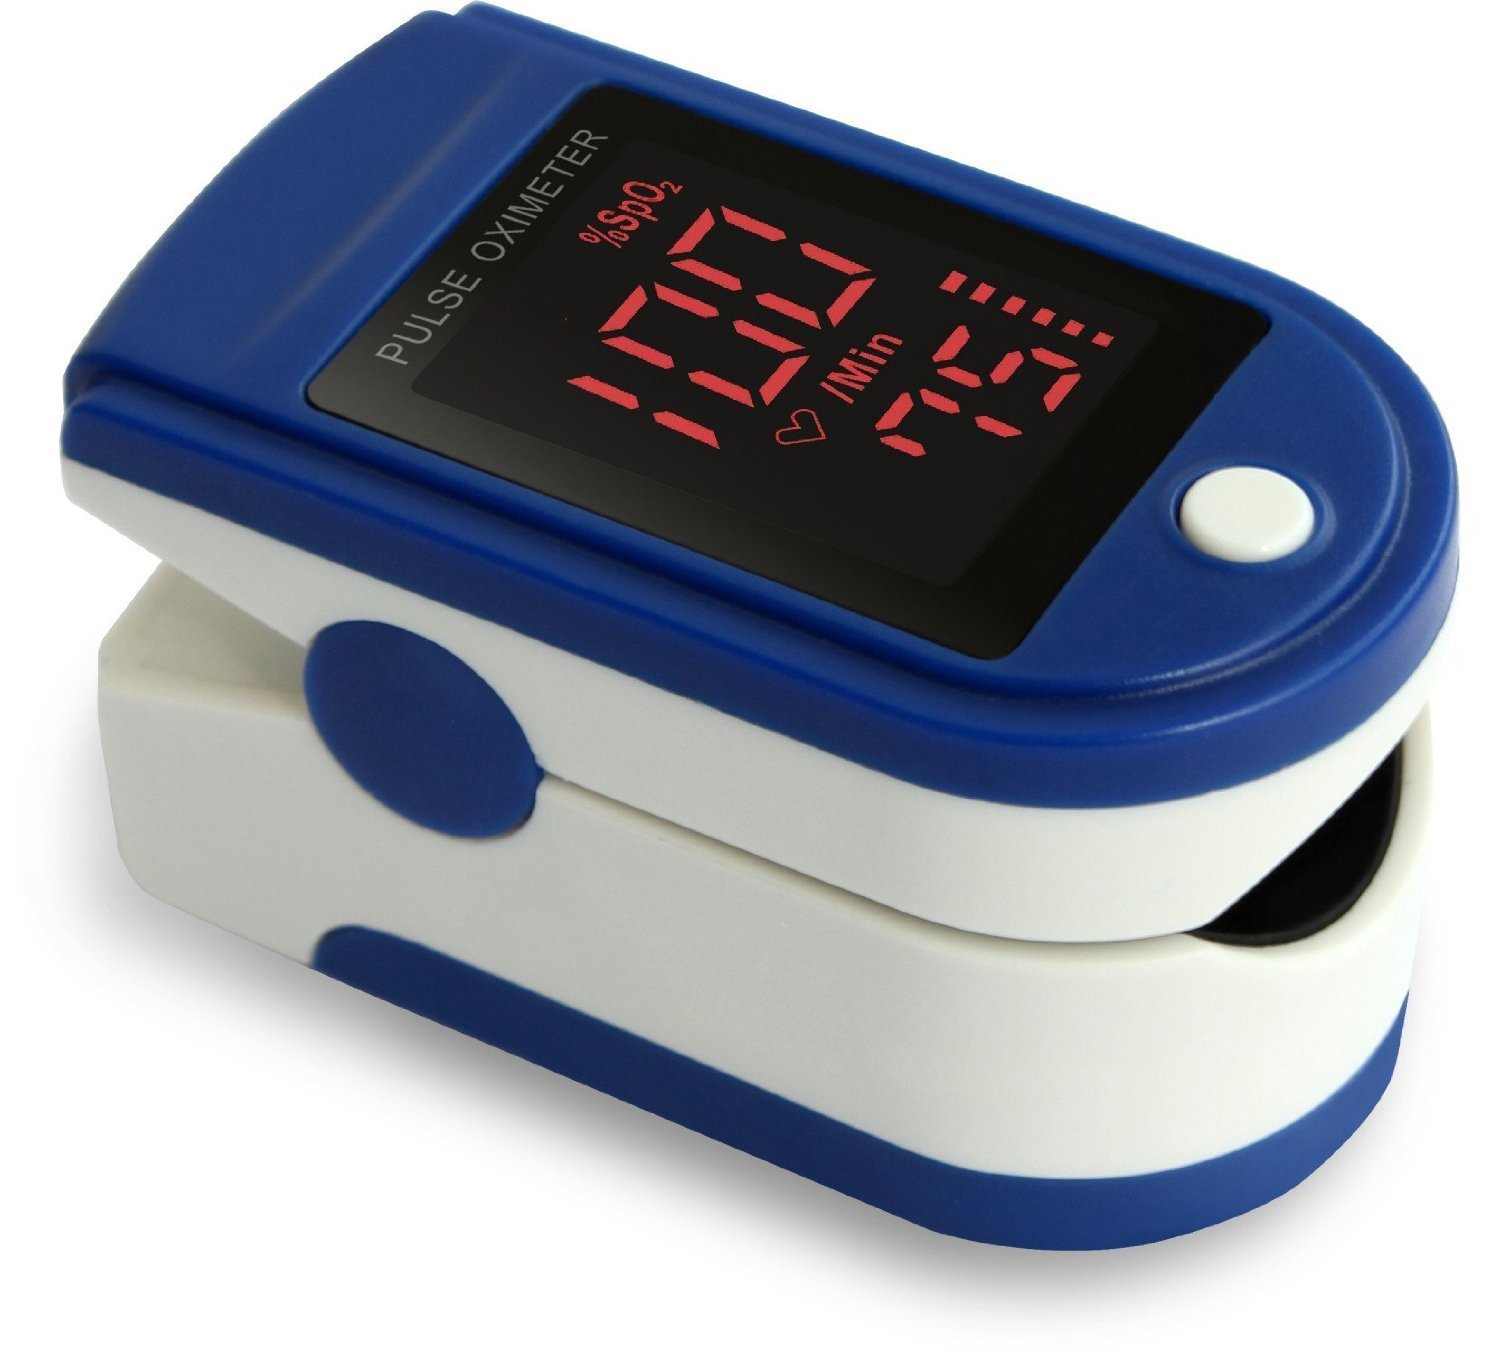 Cheap Pulse Oximeter Device Find Deals On Spo2 Heart Rate Get Quotations Zacurate Pro Series Cms 500dl Fingertip Blood Oxygen Saturation Monitor With Silicon Cover